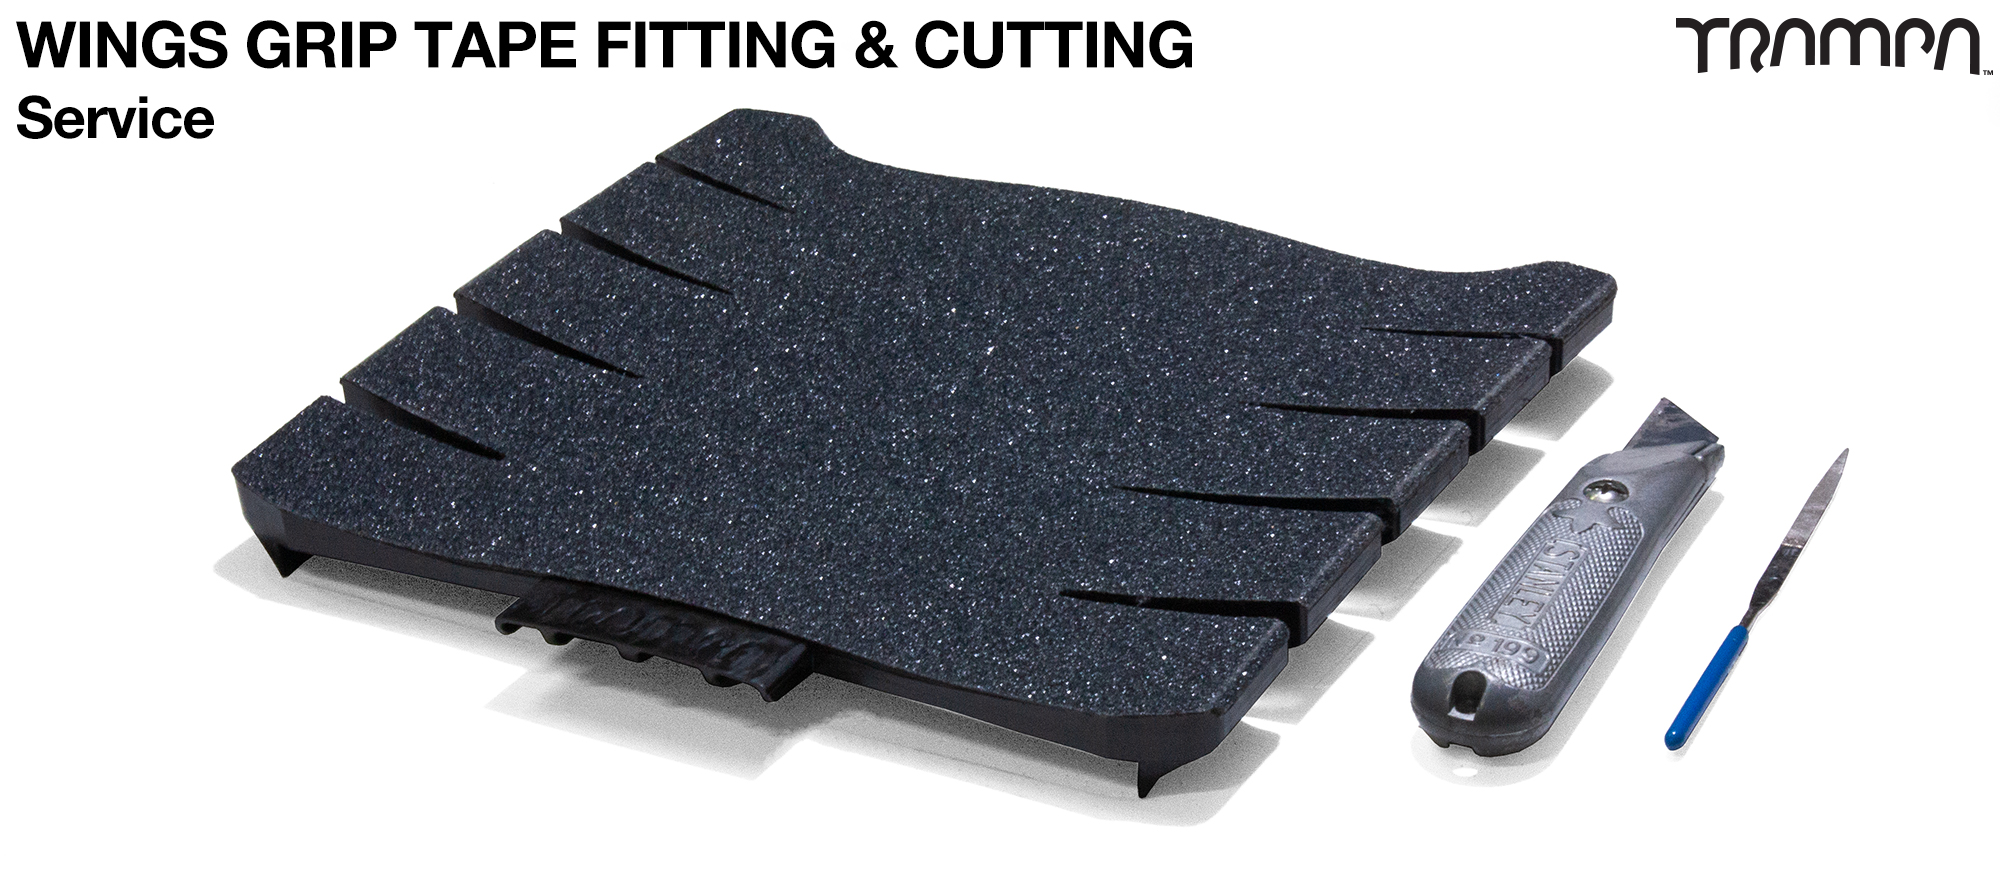 Intricately cut out by hand, fitting GRIP Tape to the TRAMPA WINGS Service Charge